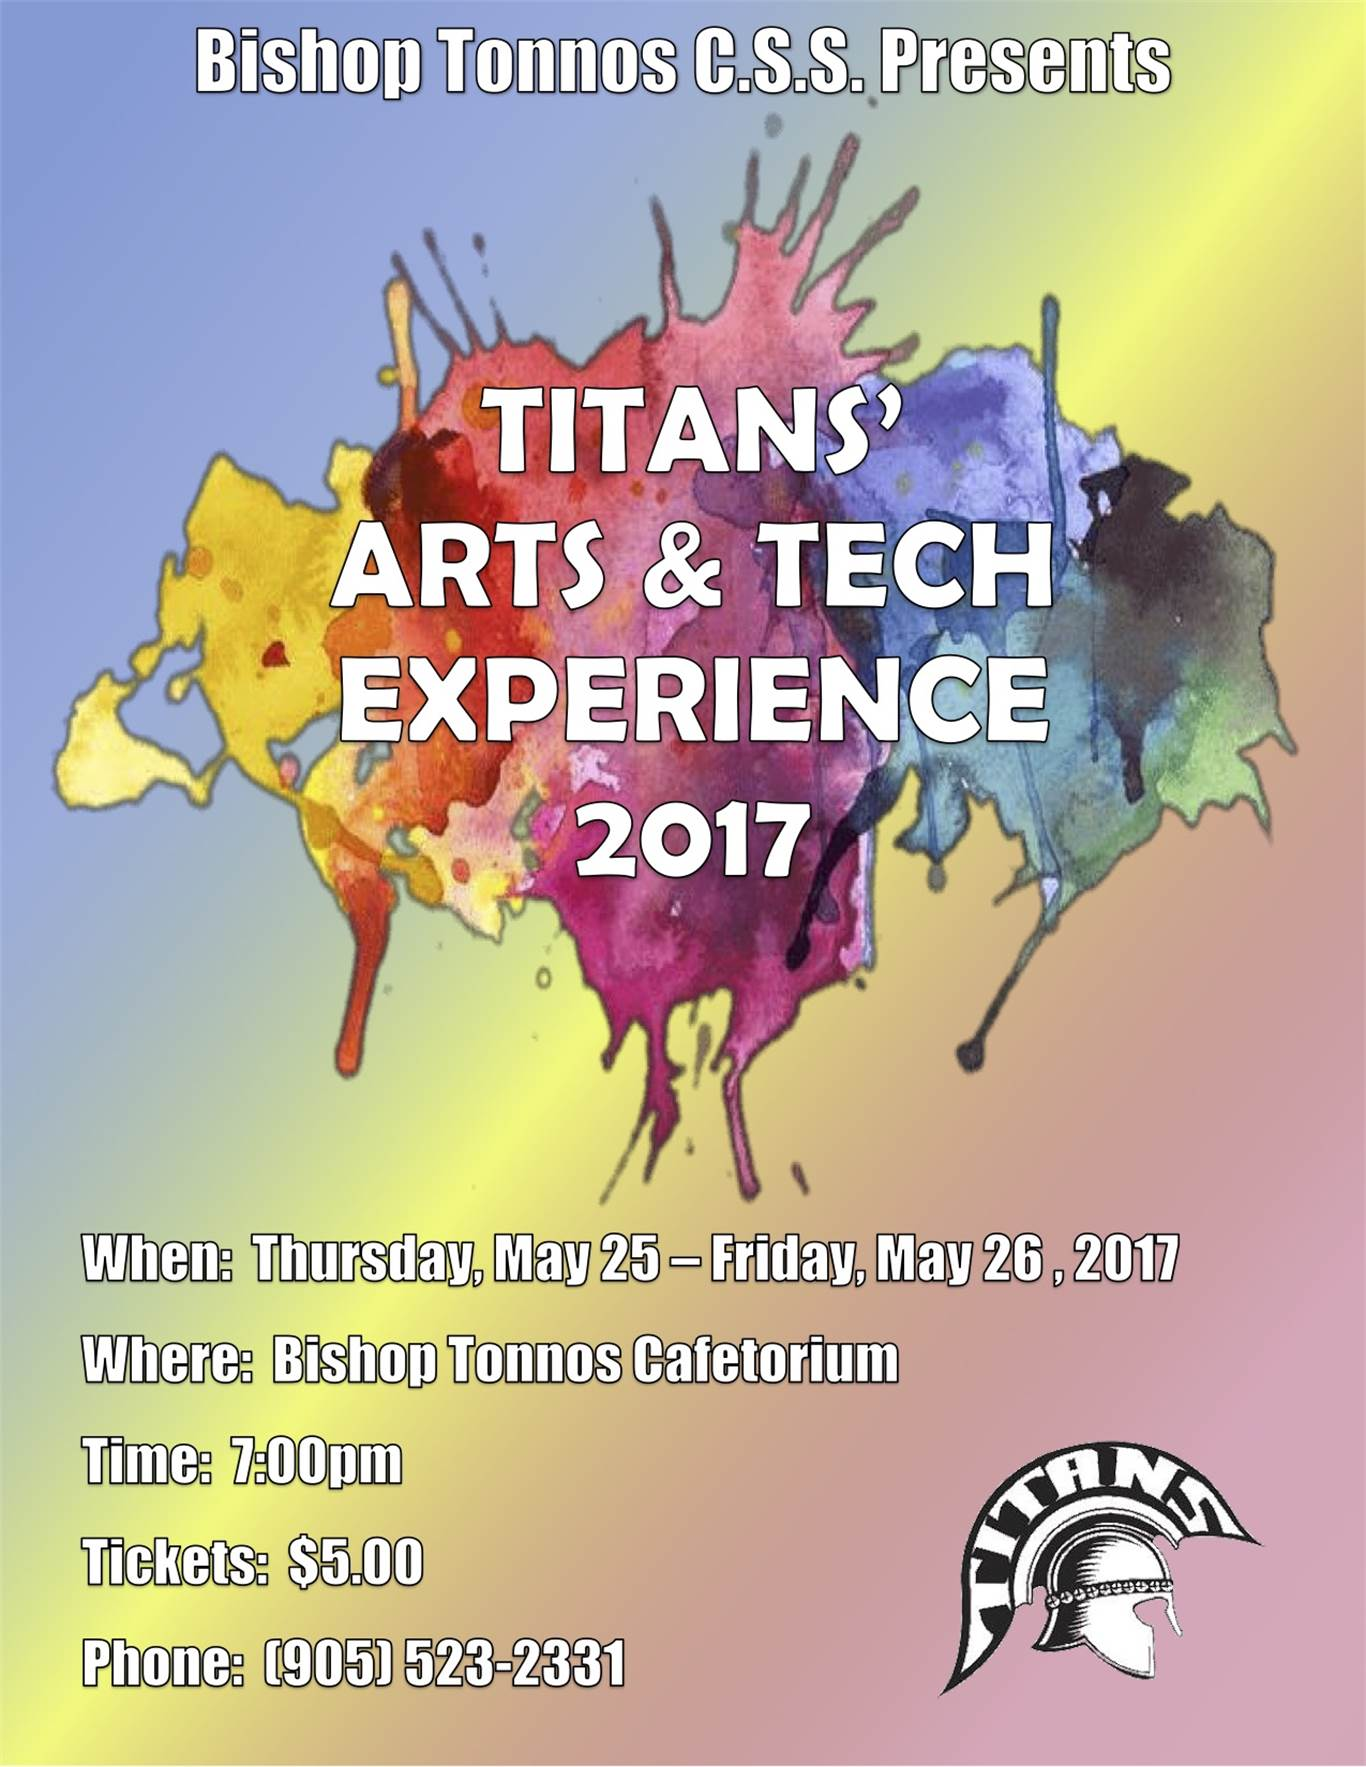 Titans' Arts & Tech Experience